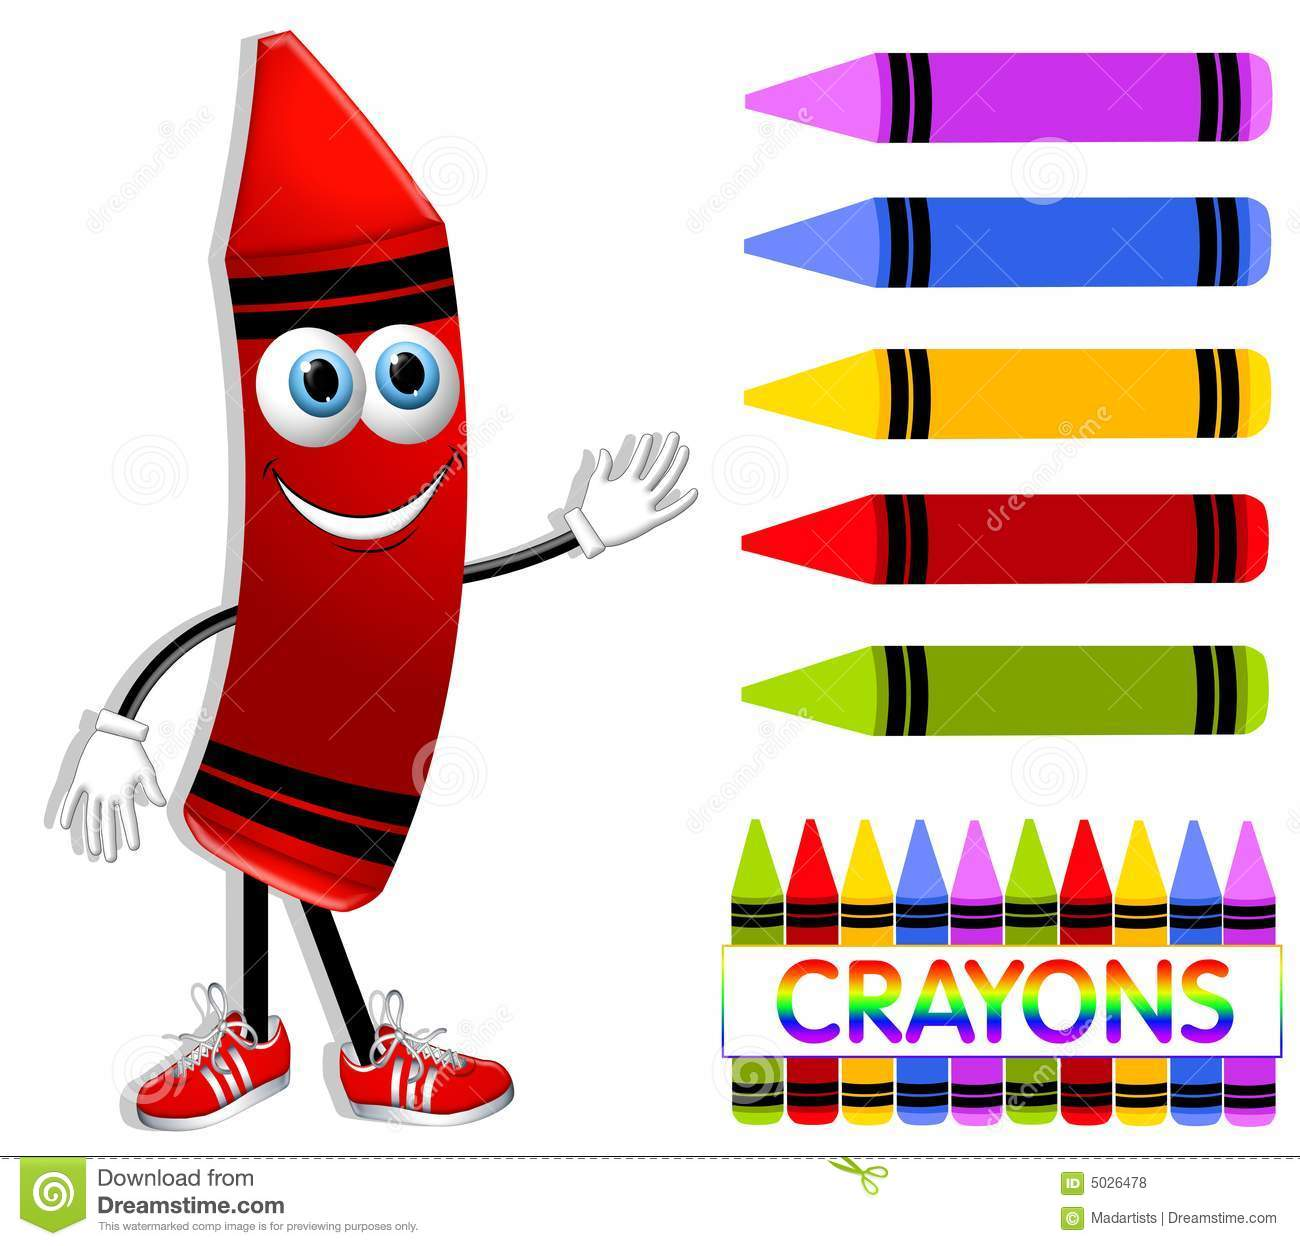 cartoon crayon collection stock illustration illustration of image rh dreamstime com red crayon clipart black and white red crayon clipart black and white